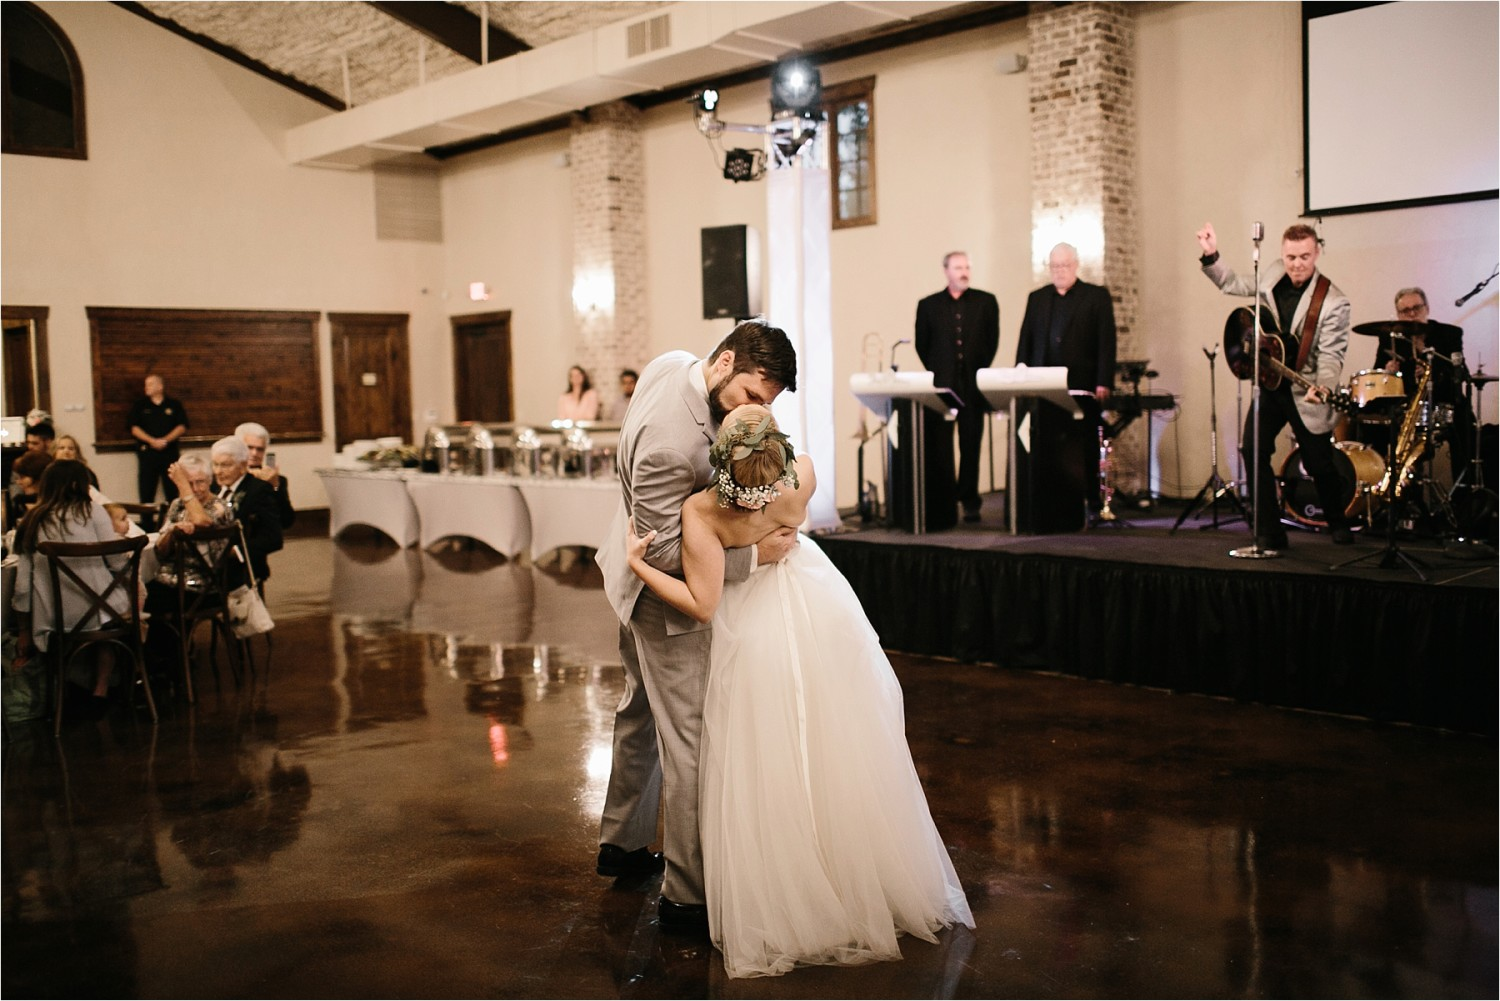 brad-lara-__-a-grey-and-blush-pink-intimate-wedding-at-hidden-waters-event-center-in-waxahachie-tx-by-north-texas-wedding-photographer-rachel-meagan-photography-_-081